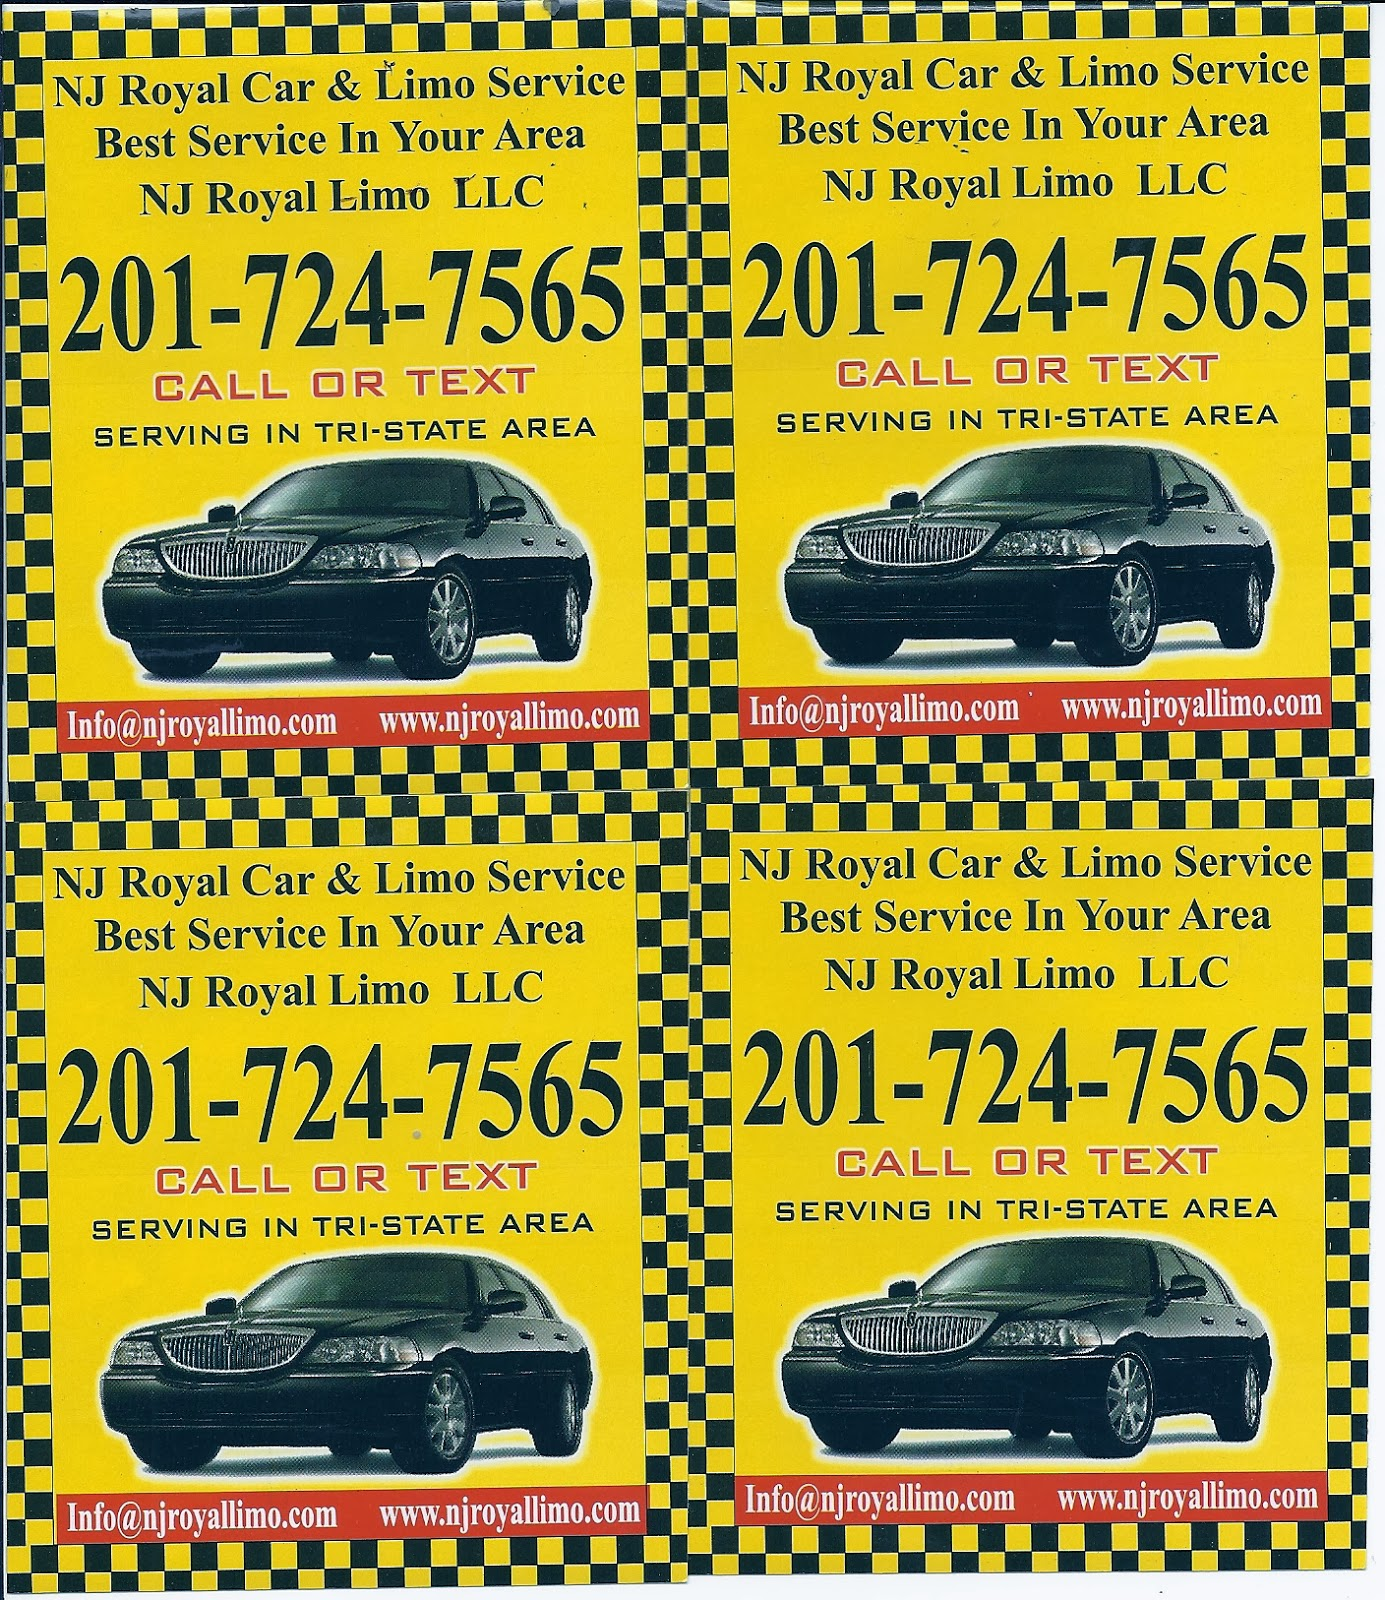 Call 201-724-7565 Bergen County Taxi Cab Www.njroyallimo.com